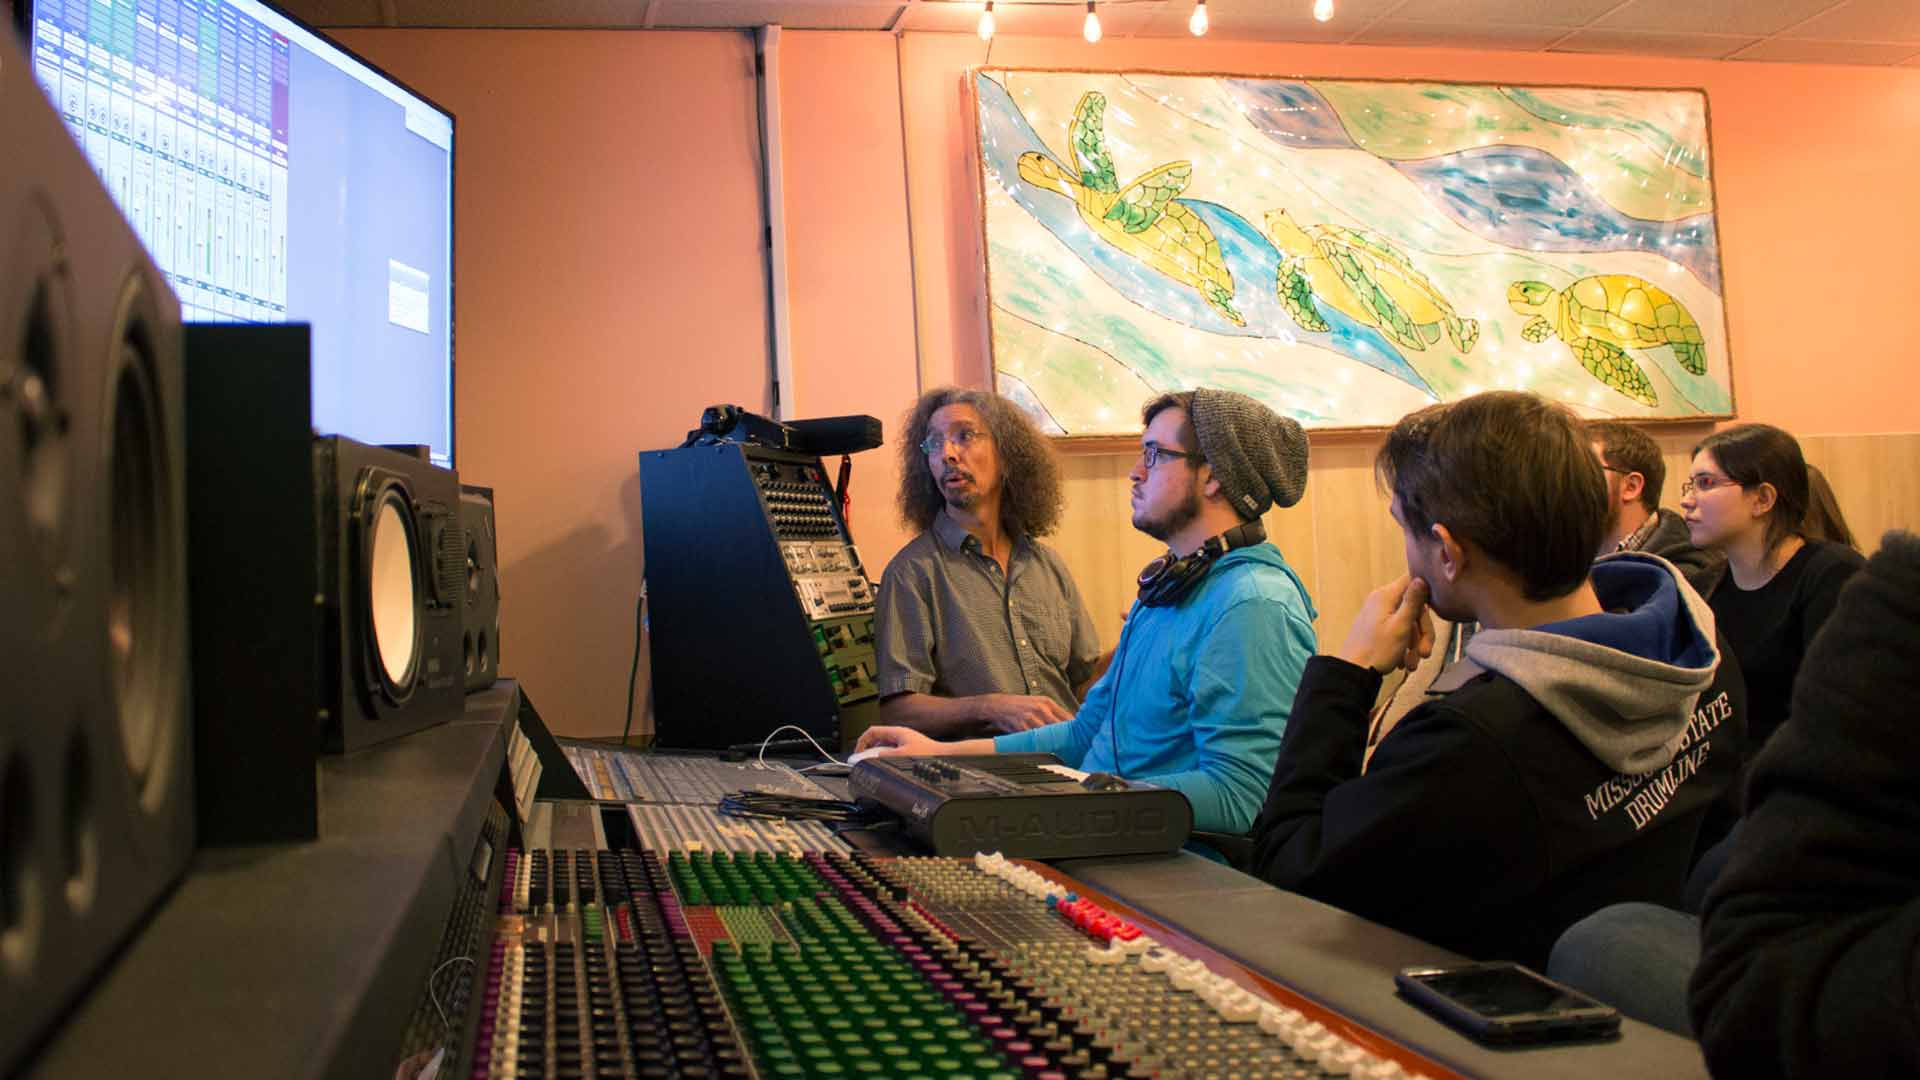 Professor helping students edit audio.